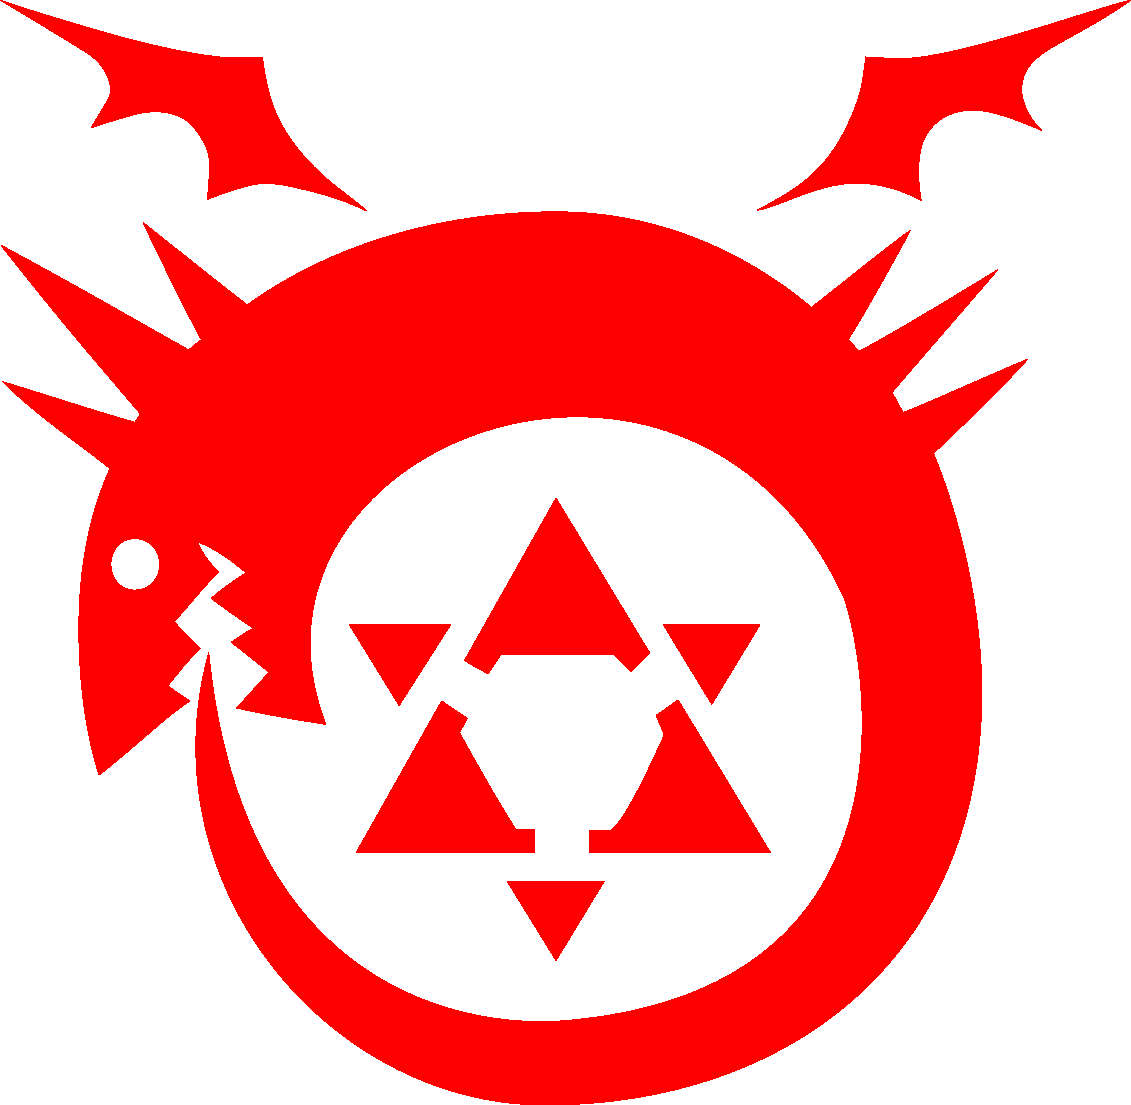 Homunculi Fullmetal Alchemist Villains Wiki Fandom Powered By